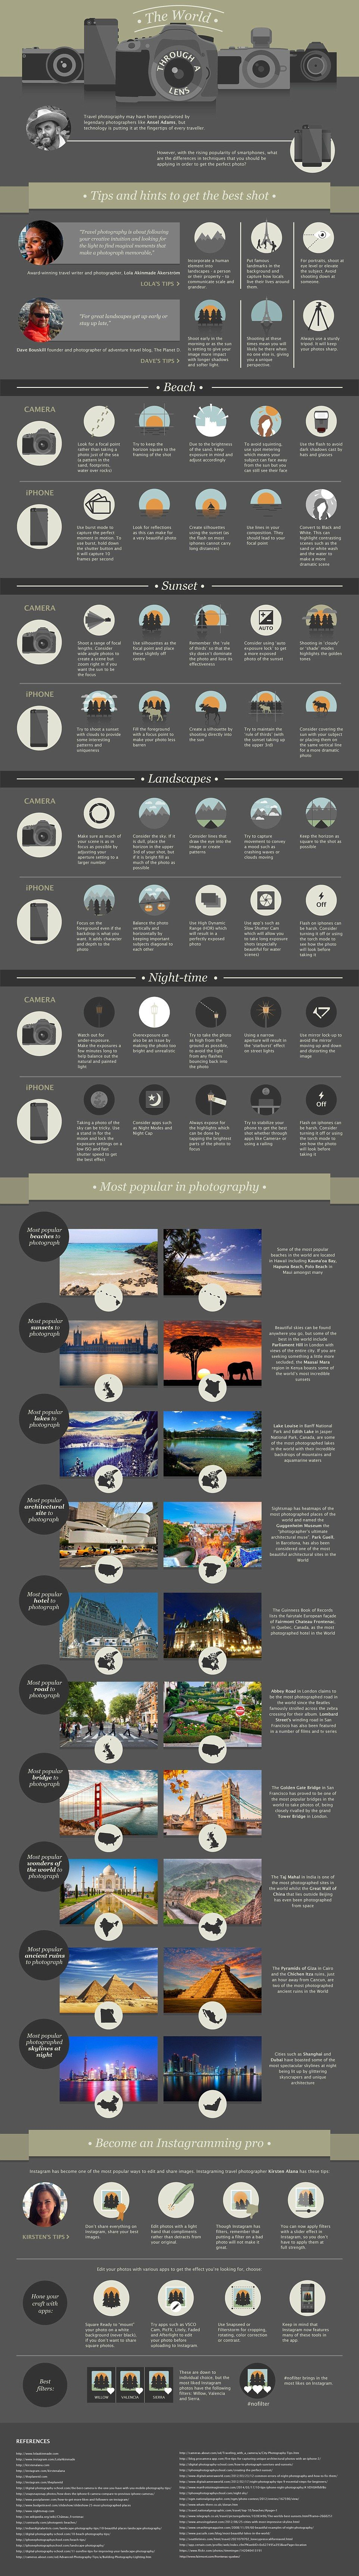 Experts reveal their ultimate travel photography tips